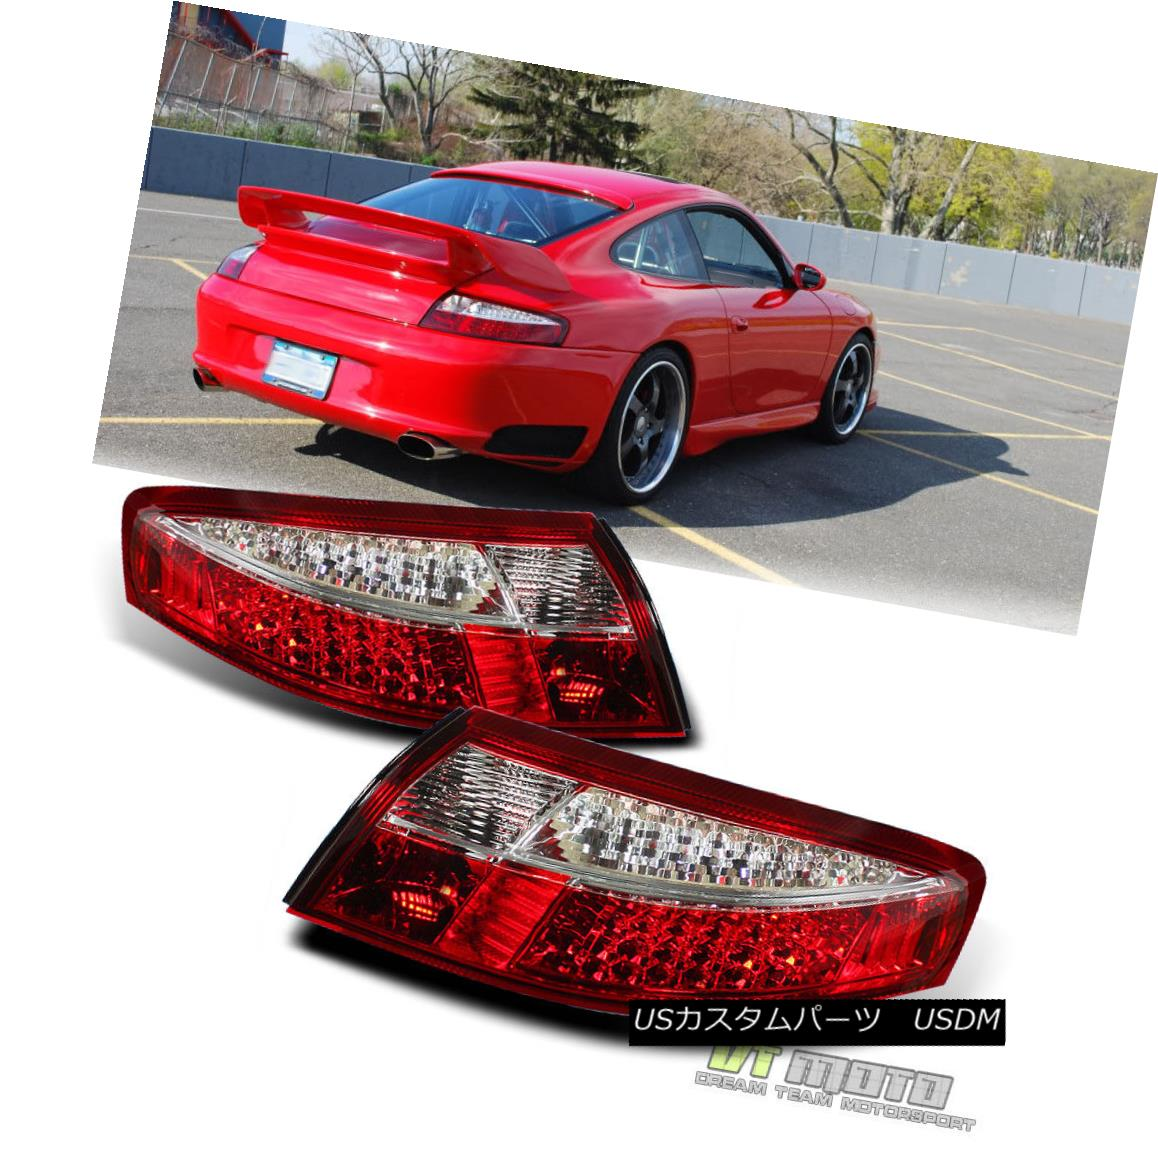 テールライト 1999-2004 Porsche 911 996 Carrera 4 Philips Lumileds LED Tail Lights Lamps 99-04 1999-2004 Porsche 911 996 Carrera 4 Philips Lumileds LEDテールライトランプ99-04